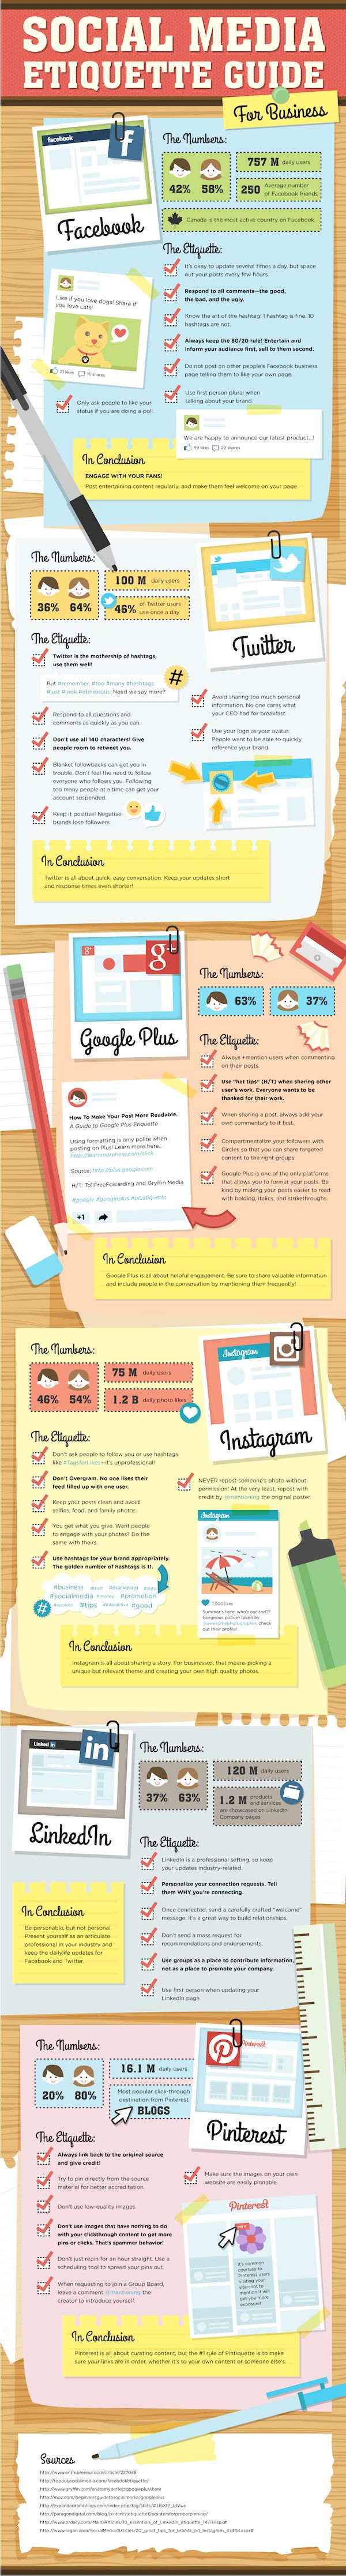 "SOCIAL MEDIA - ""A Social Media Etiquette Guide You Might Find Useful"". For Business."